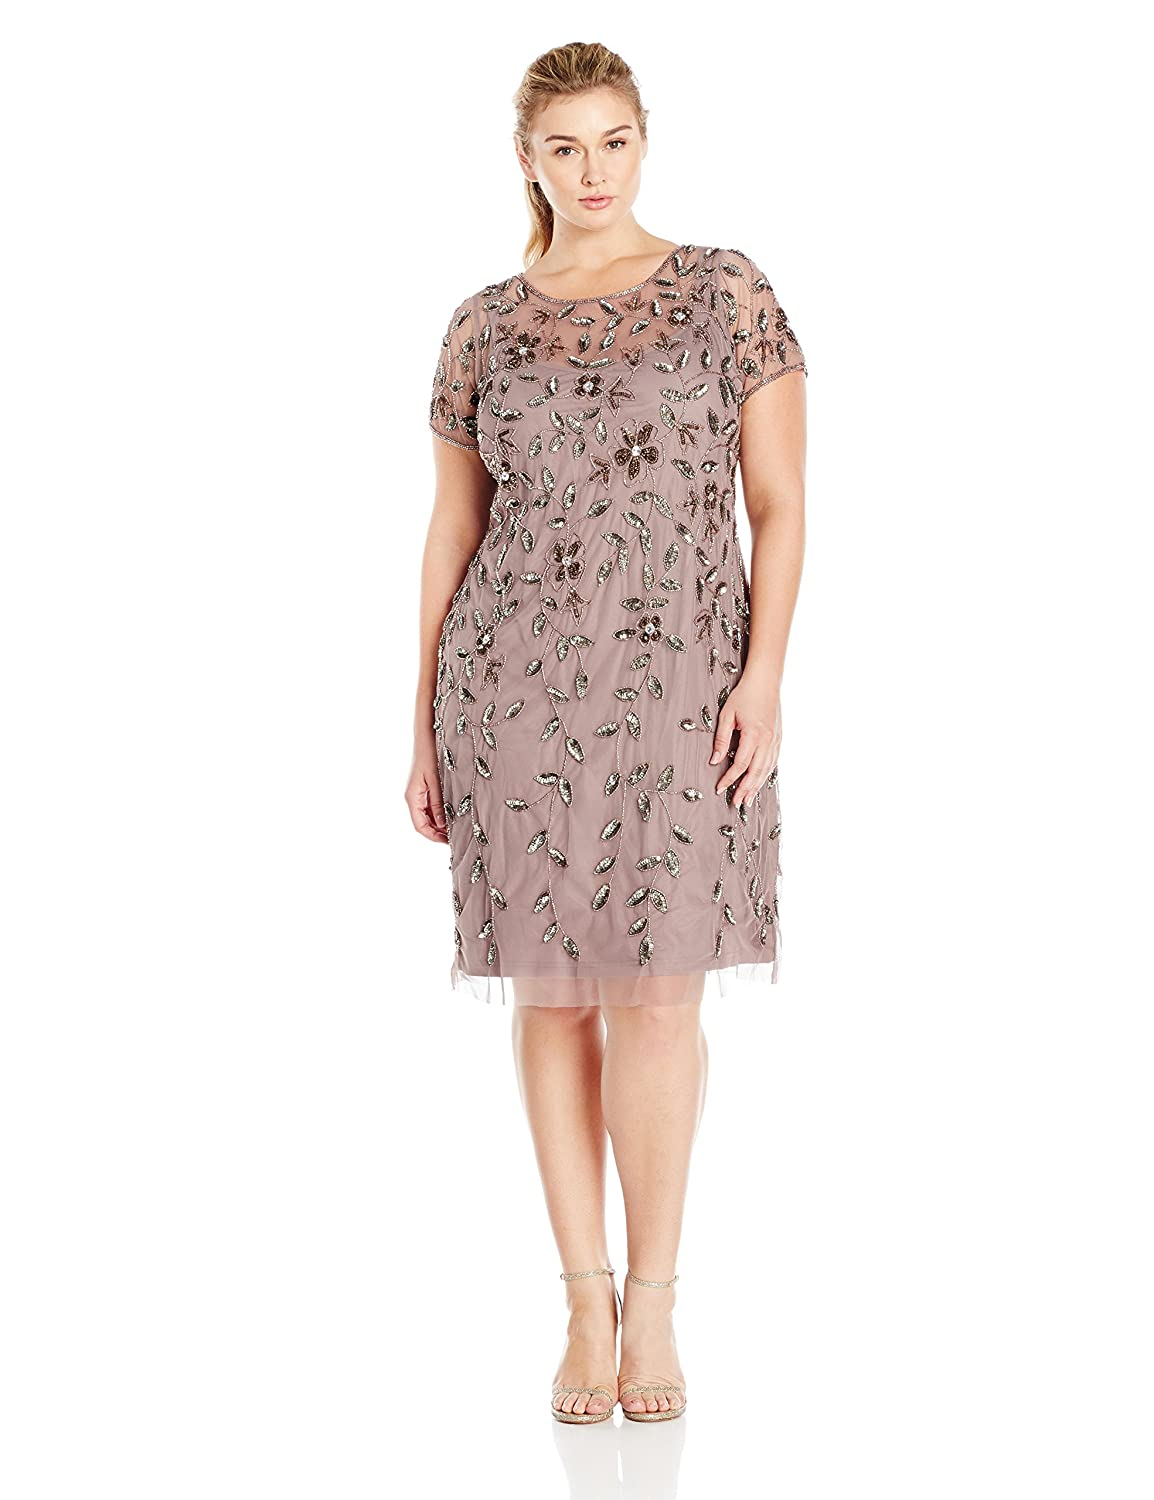 ea0a6ae5 Amazon.com: Adrianna Papell Women's Plus-Size Short Sleeve Beaded Cocktail  Dress: Clothing